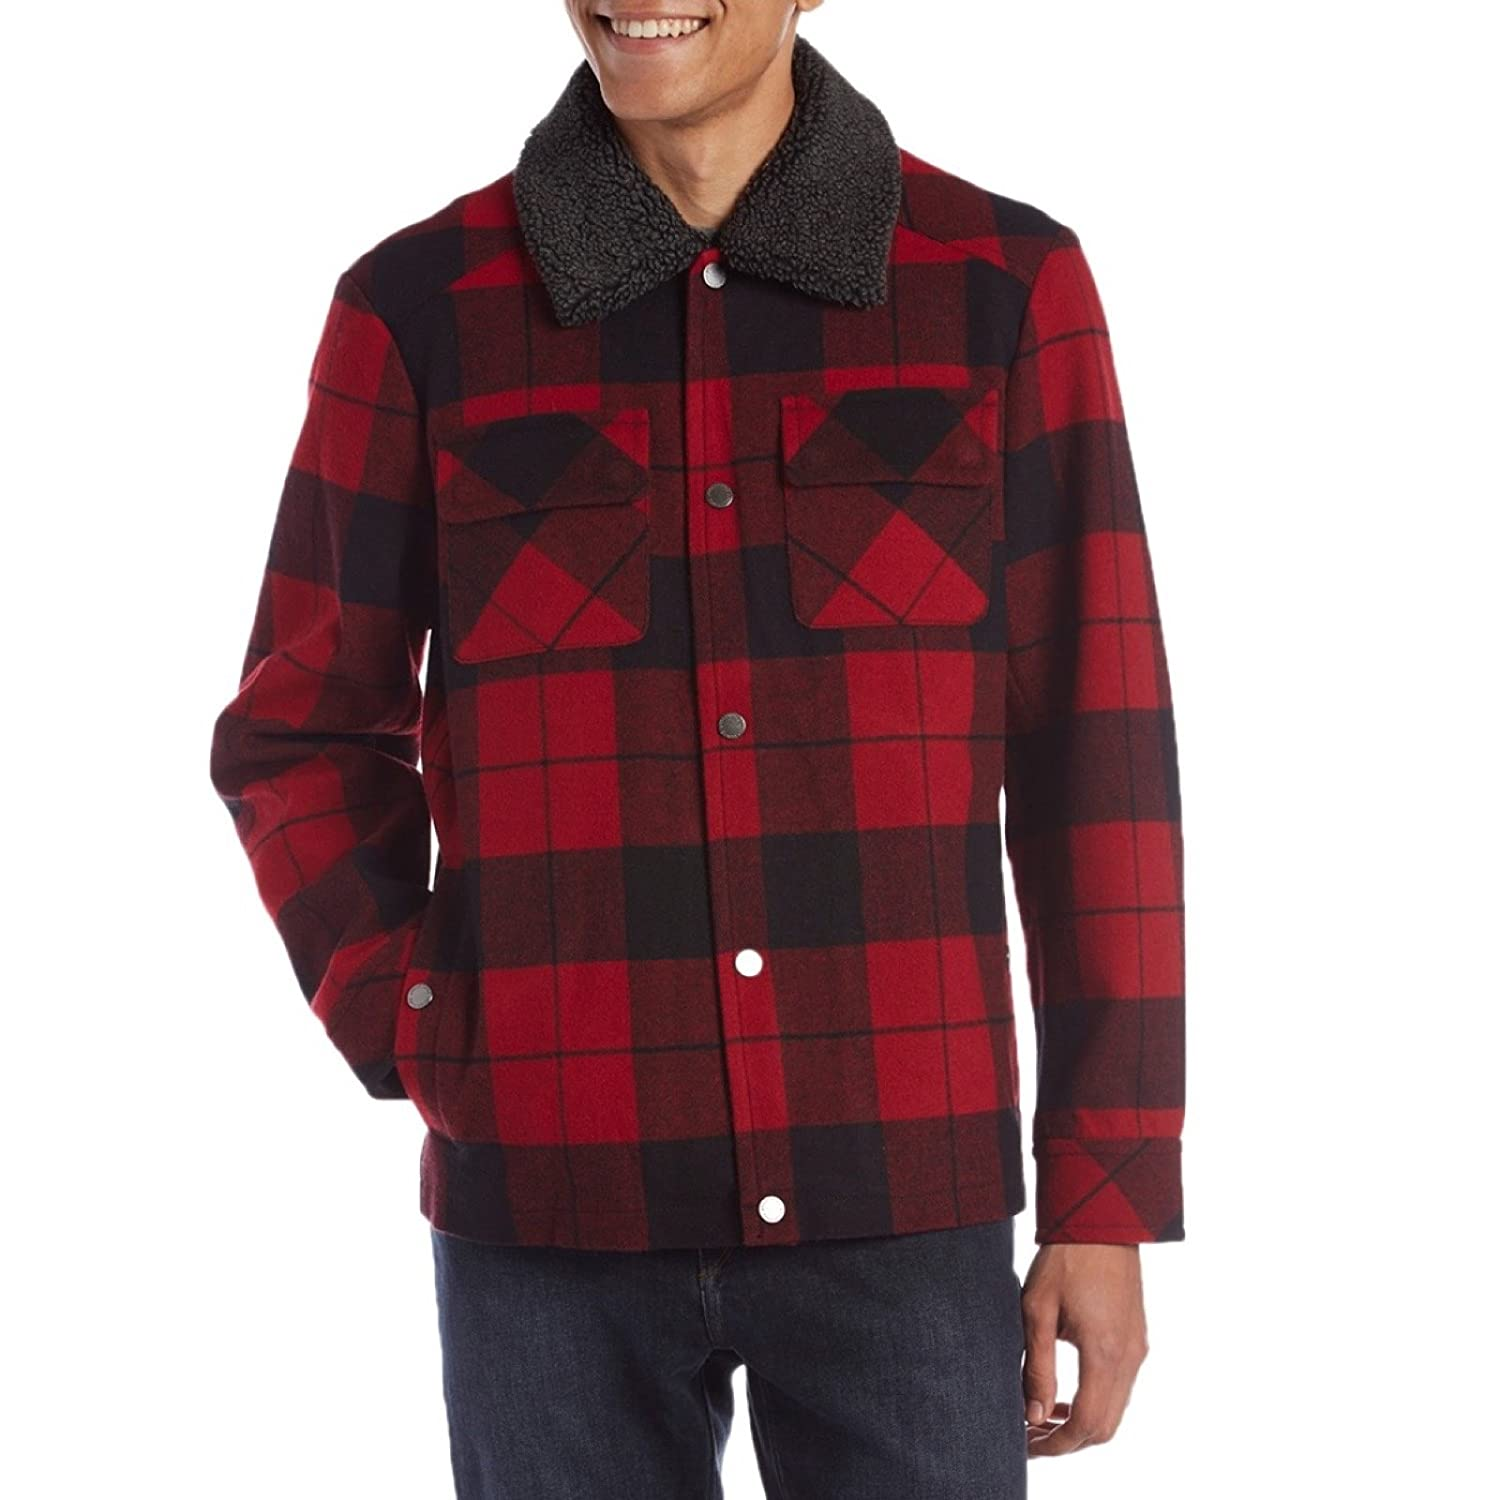 Men's Vintage Style Coats and Jackets Pendleton Mens Rock Springs Coat $259.00 AT vintagedancer.com